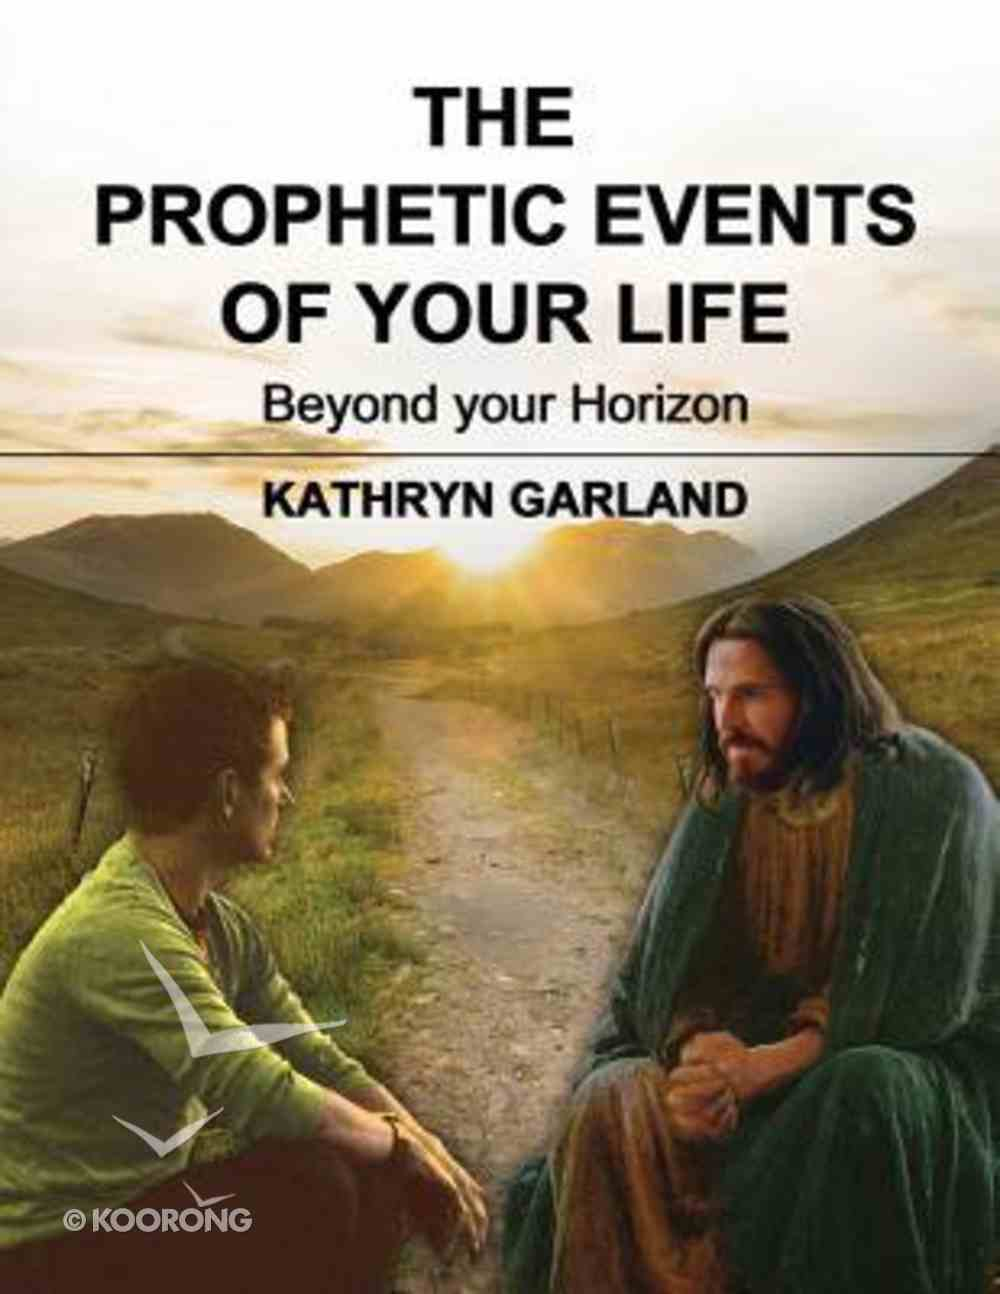 The Prophetic Events of Your Life: Beyond the Horizon Paperback